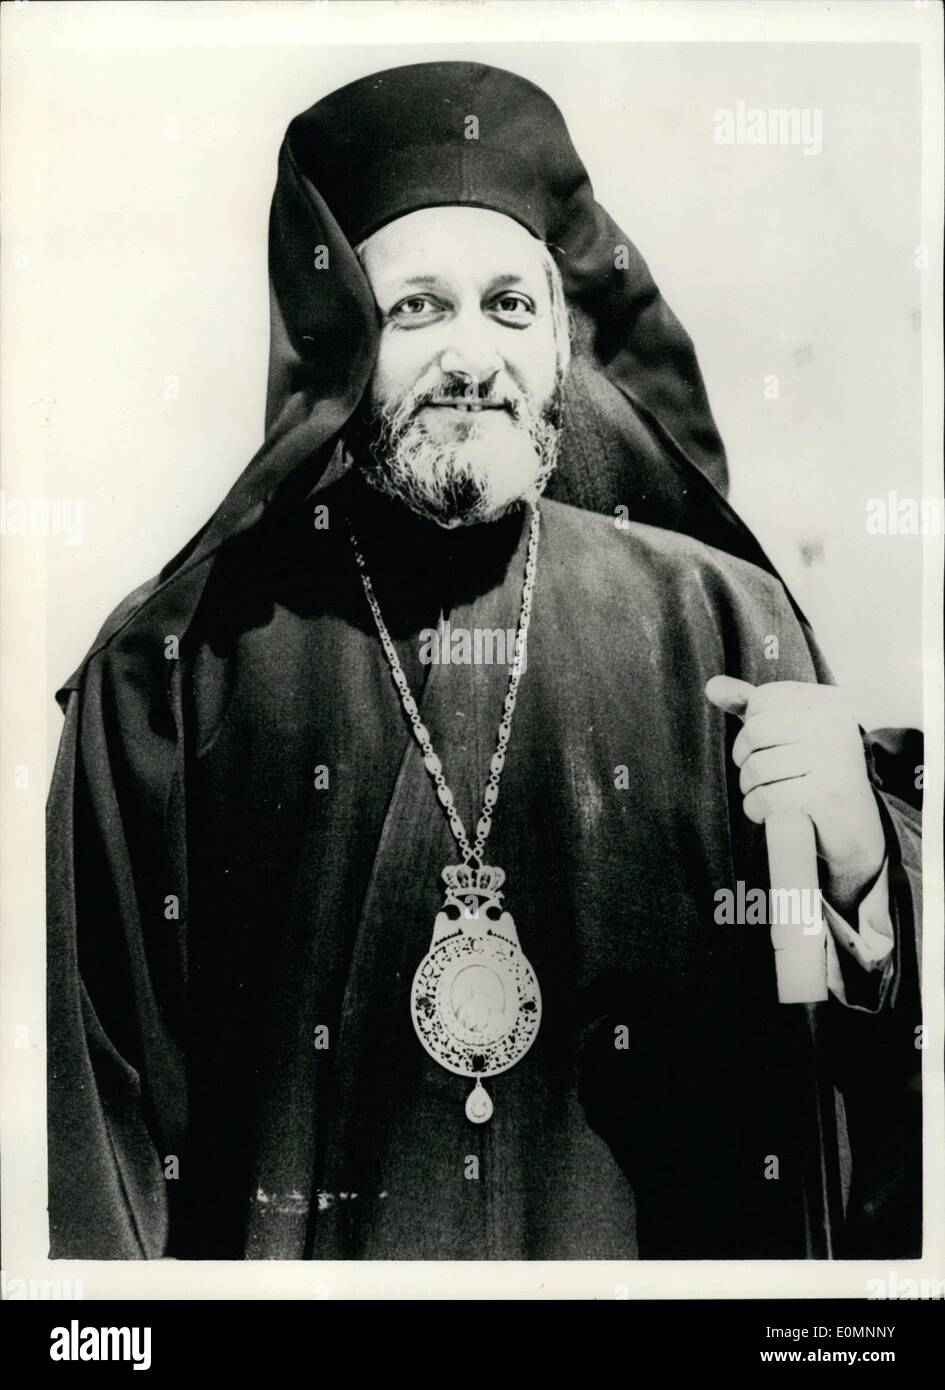 Mar. 28, 1956 - 28-3-56 Bishop of Paphos considered to be successor to exiled Archbishop Makarios in Cyprus. Bishop Photios of Paphos arrived in Athens recently from Egypt where he claimed he had gone on a confidential mission . The Bishop had talks with members of the Greek government but said he did not know if he was staying in Athens or going to Cyprus later. He told the press that the return from exile of Archbishop Makarios, although he is claimed as the 'successor to Makarios, Bishop Photios said Nobody could succeed the exiled Bishop - Stock Image